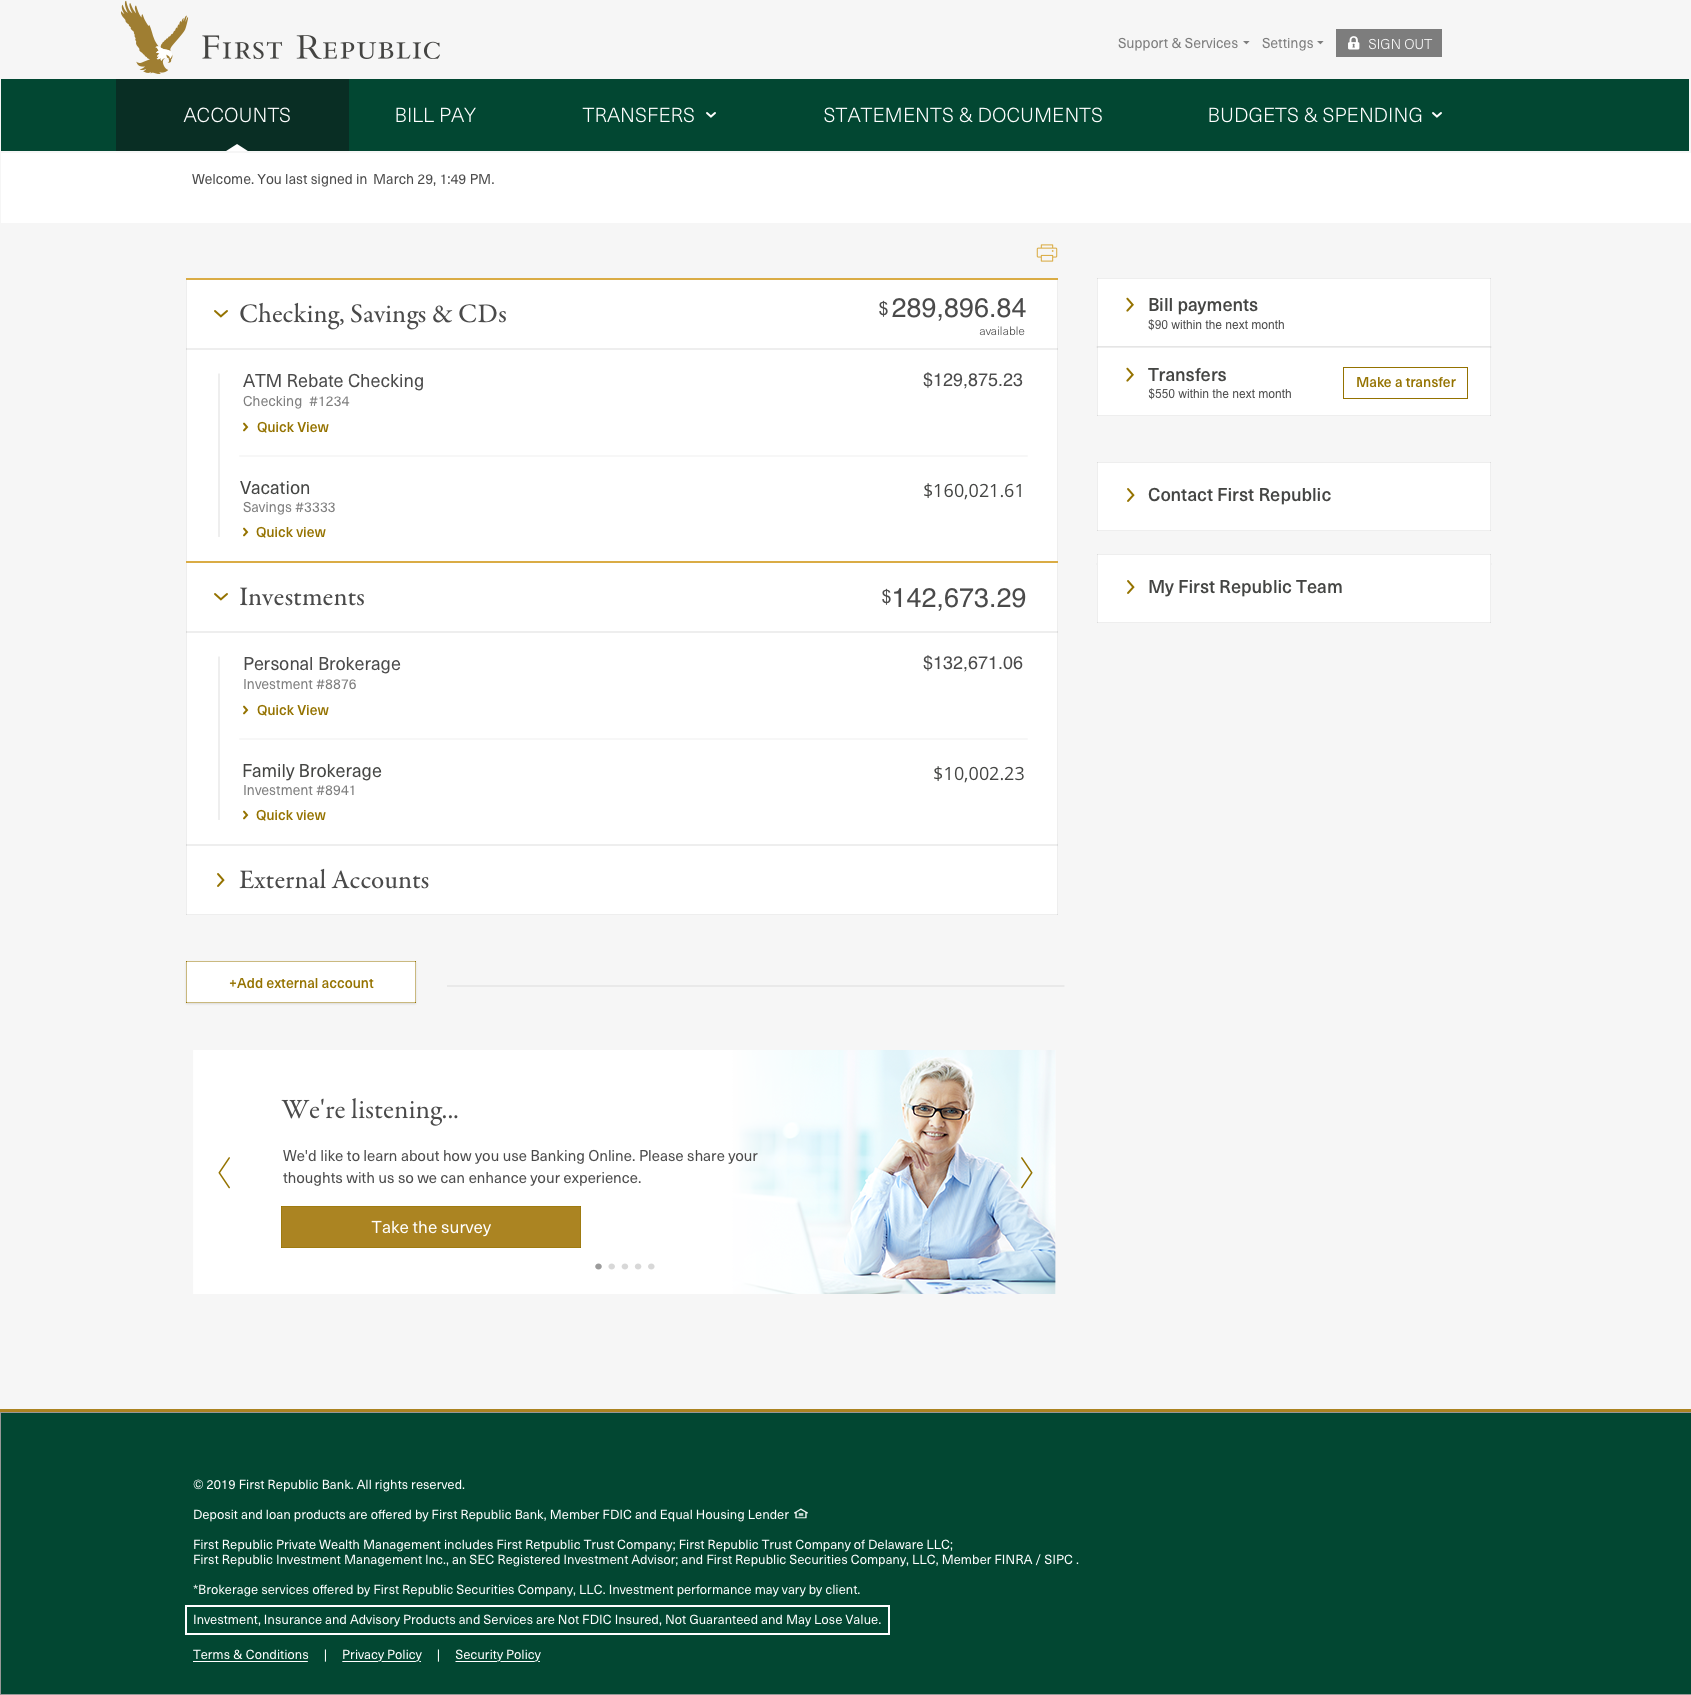 First Republic Bank's online banking